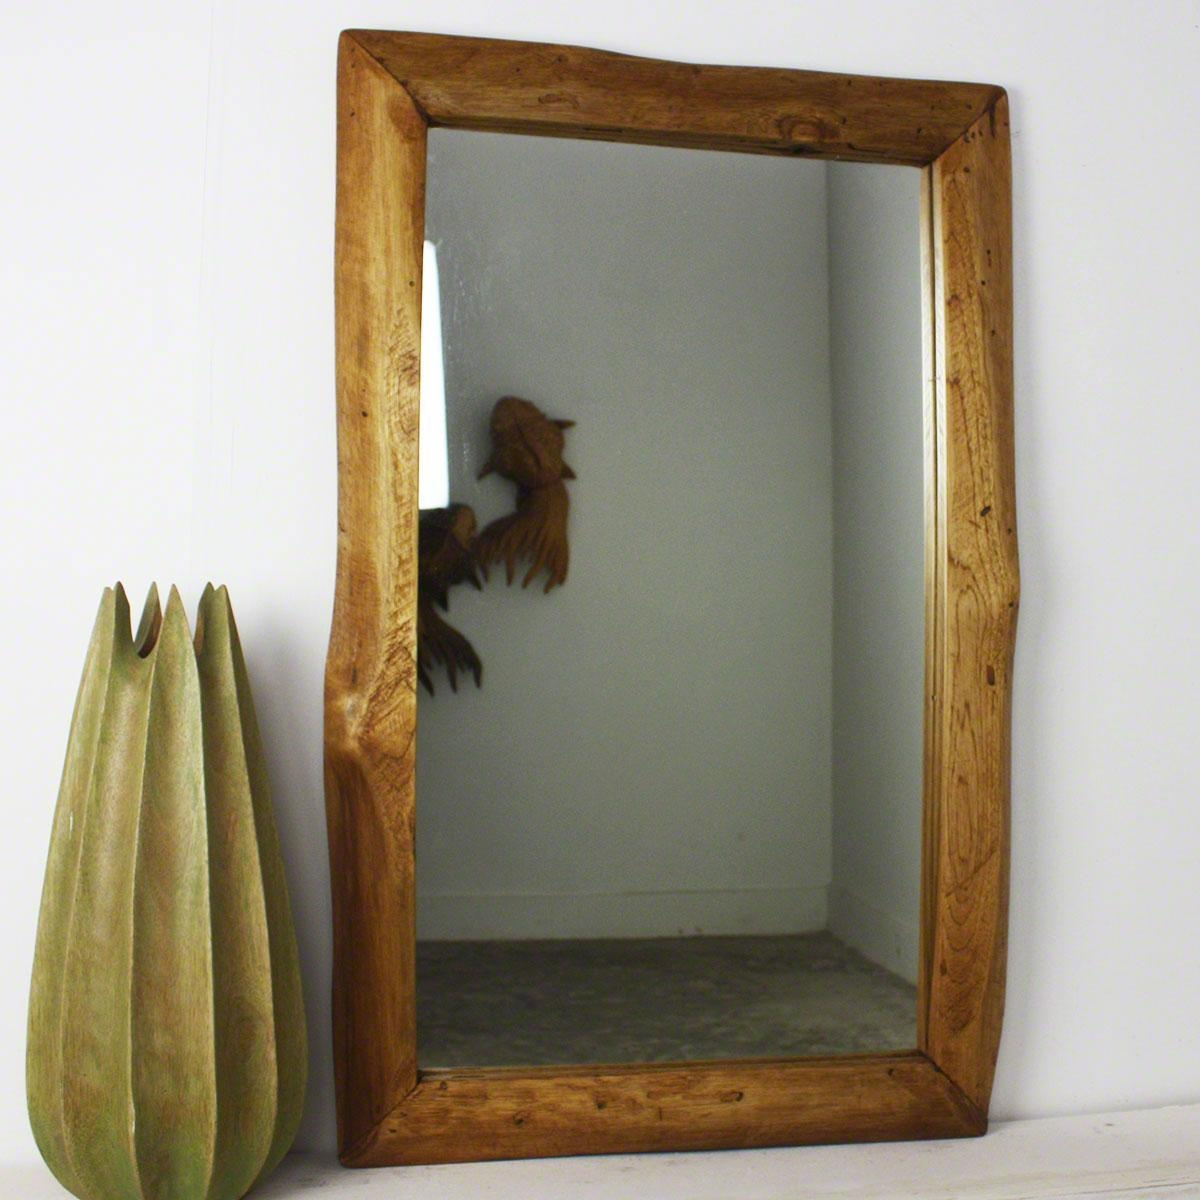 "Wall Mirror 22""x 35"" Rectangle Teak Wood Framed With Natural Edge (Image 16 of 20)"